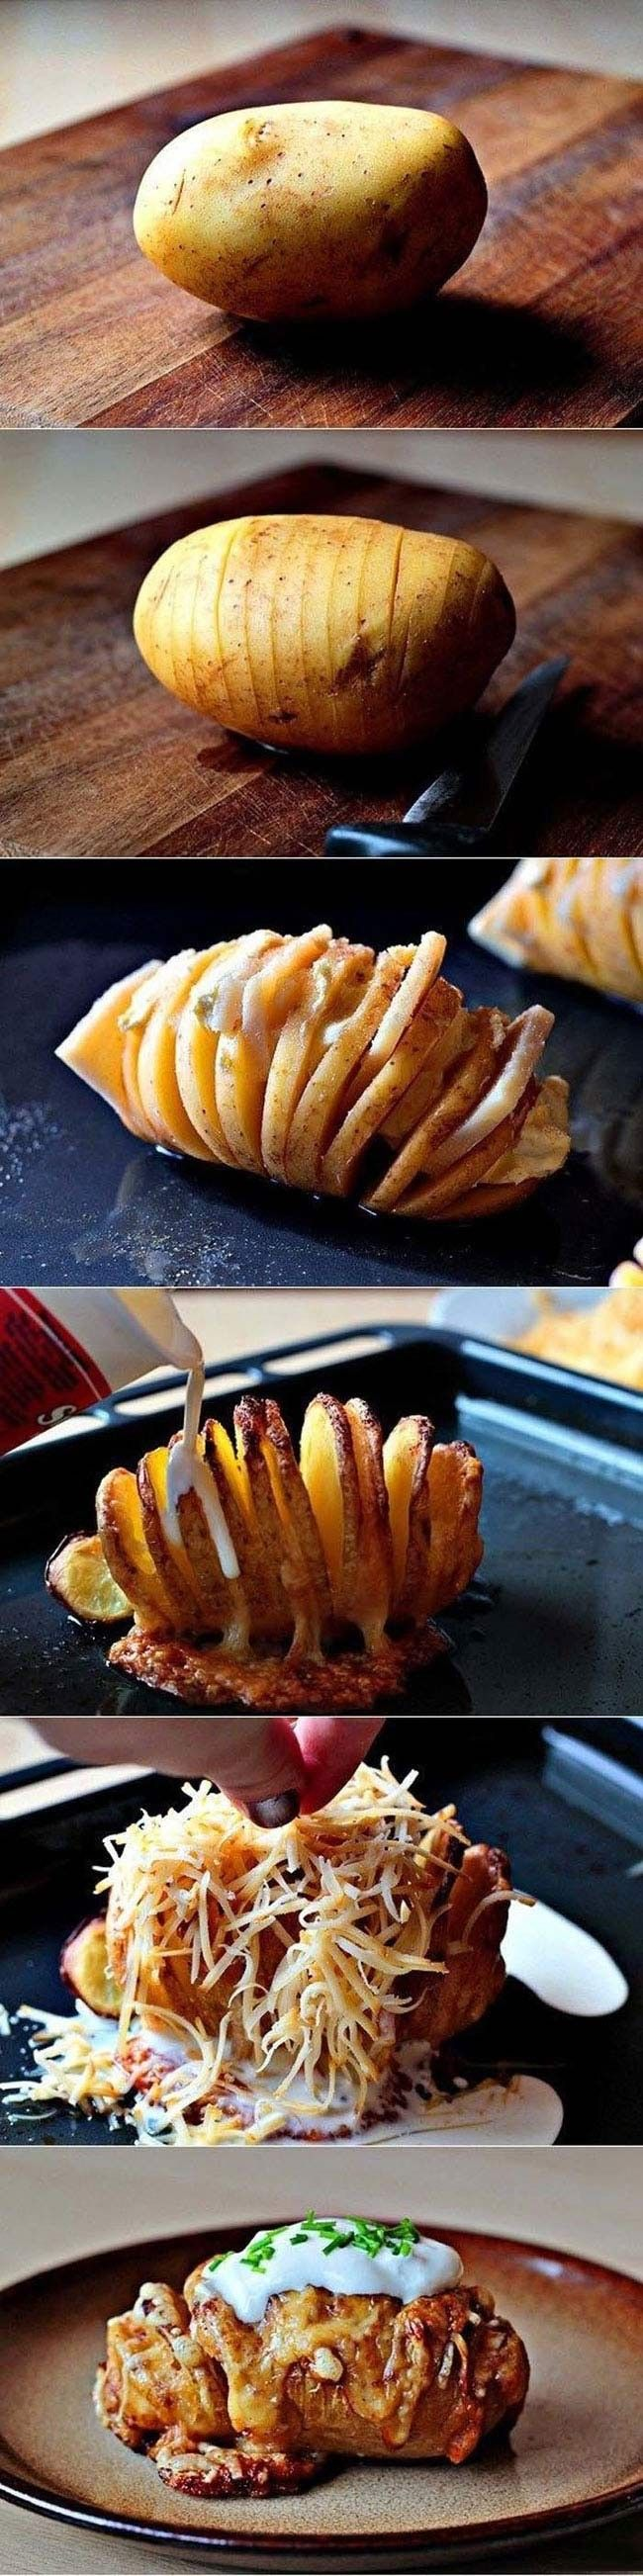 Slice up a baked potato and fill it up with cheese and toppings before baking it.